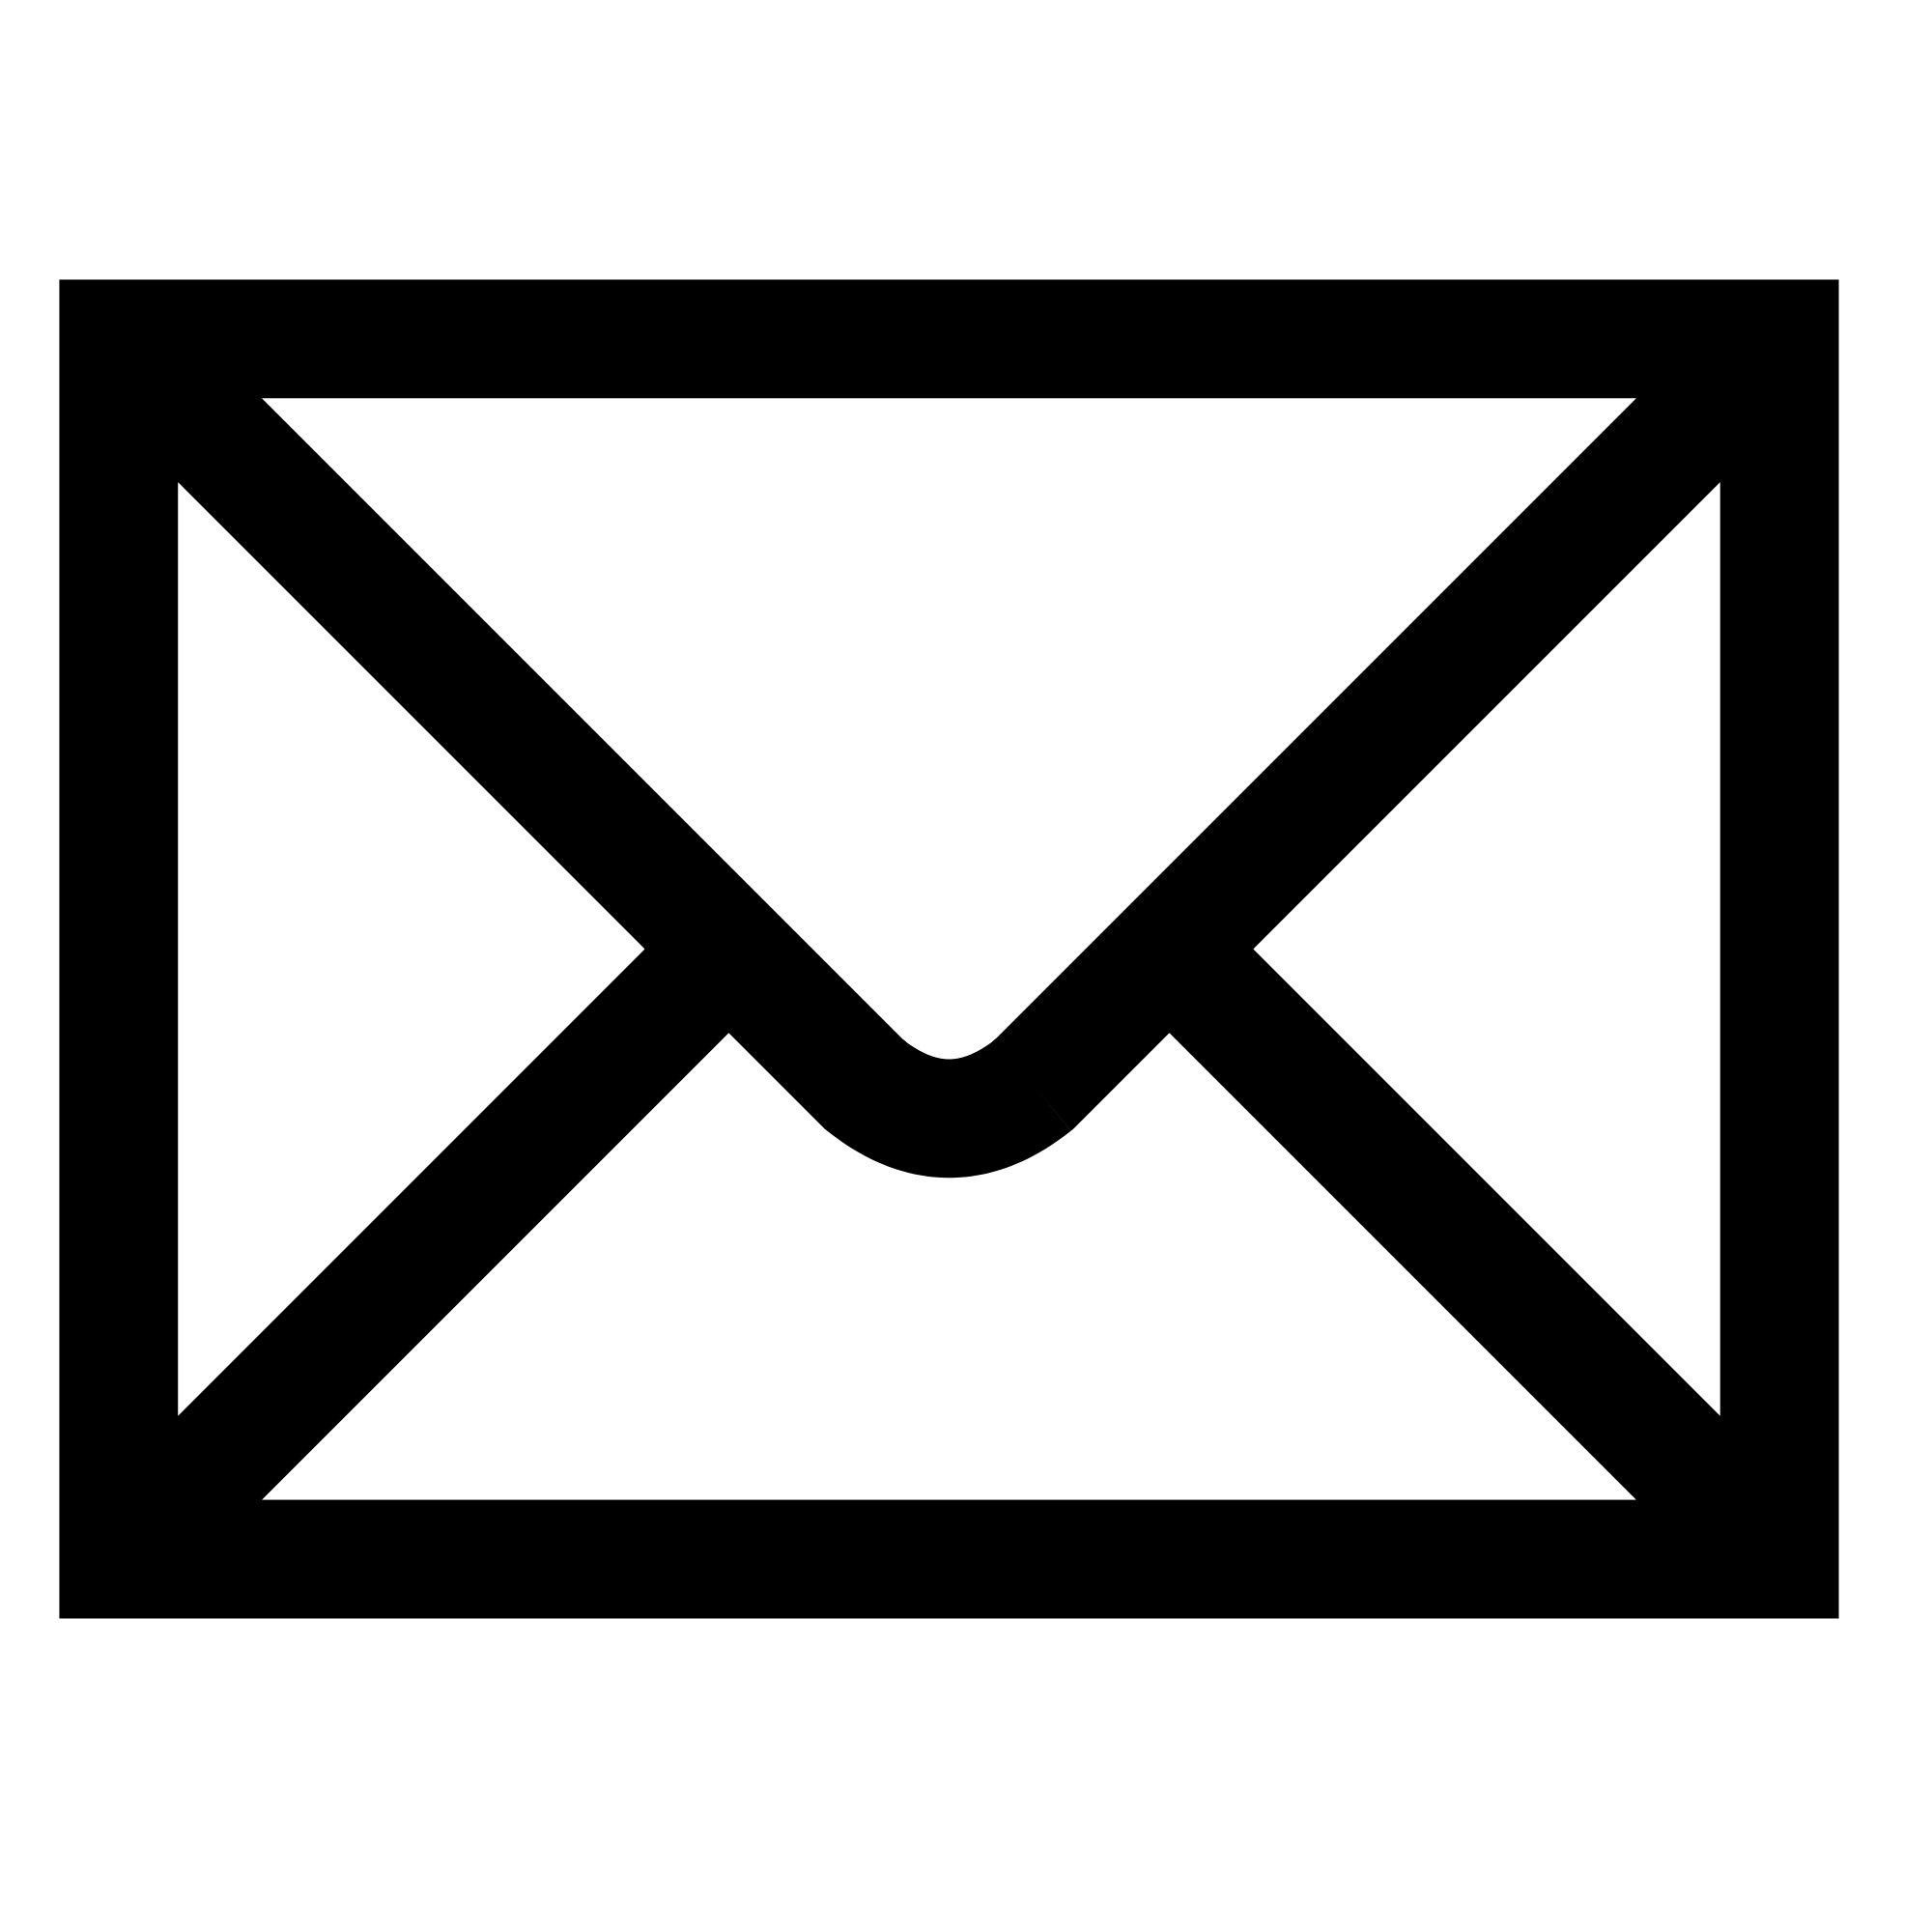 Email Logo Png.